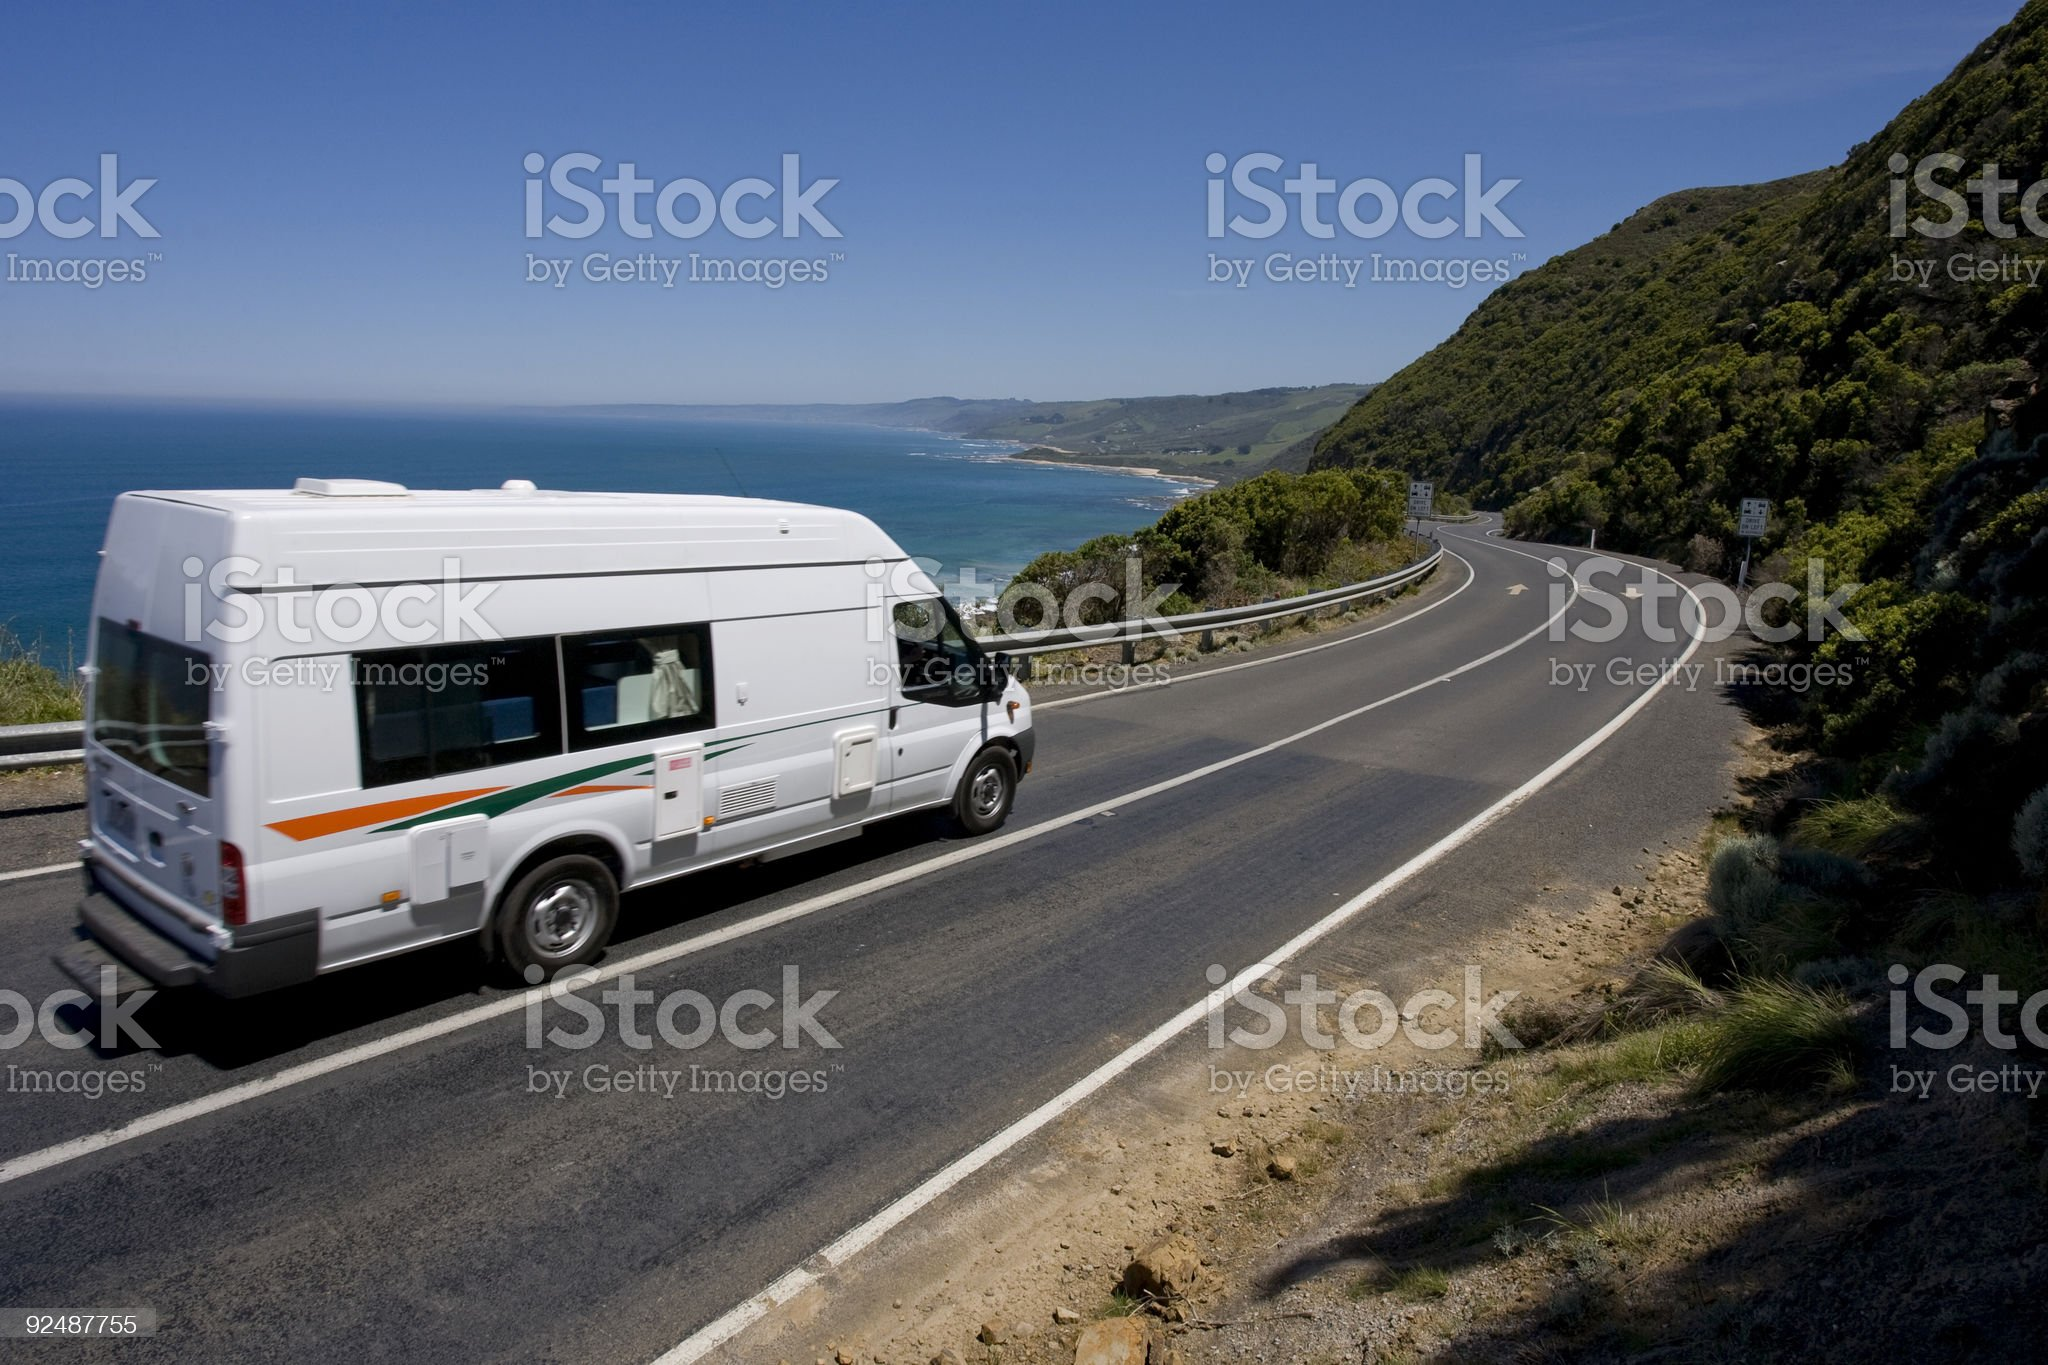 Campervan holiday on The Great Ocean Road, Australia royalty-free stock photo